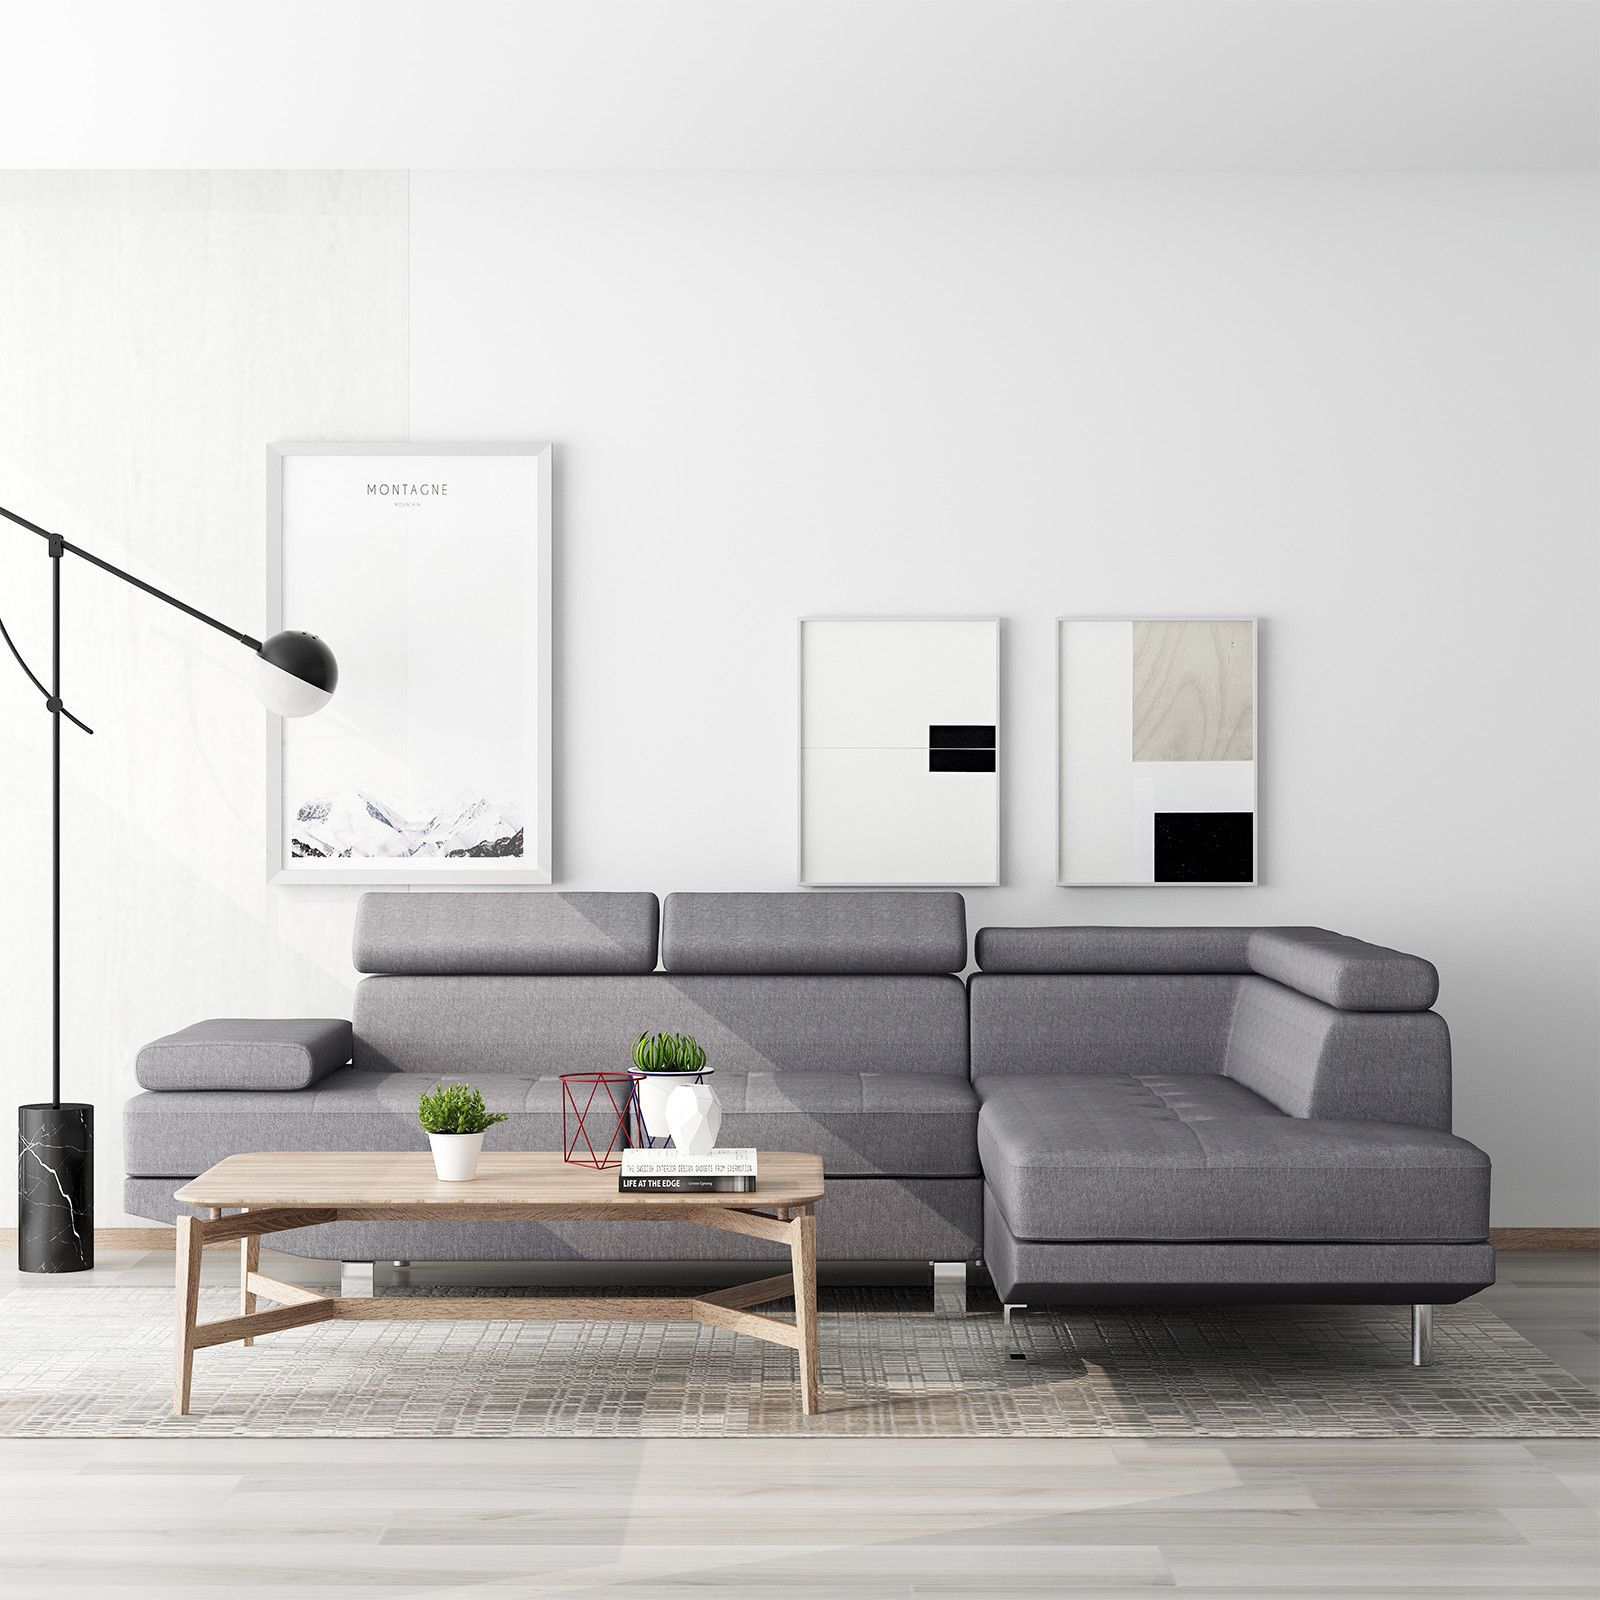 Grey Lounge Suite: Modern Grey Fabric Sectional Corner Sofa Chaise Lounge